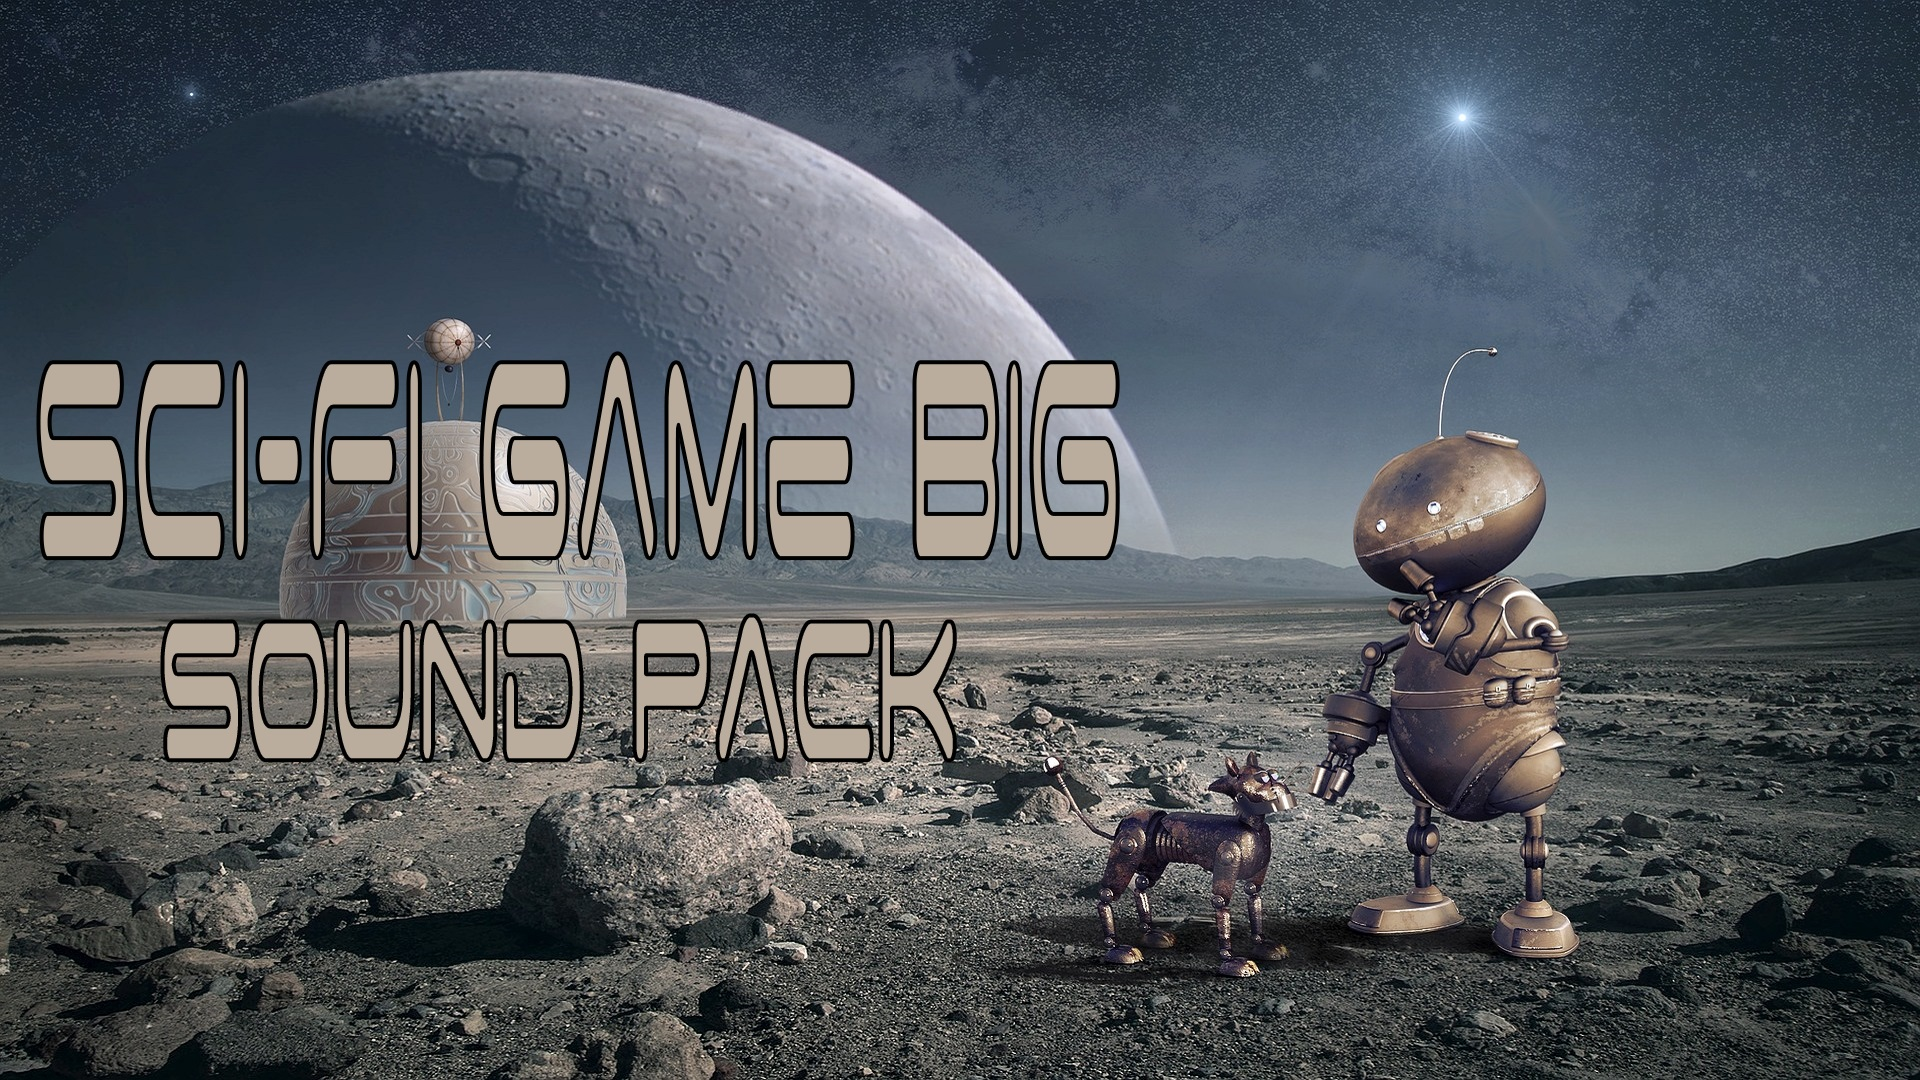 Sci-Fi Game Big Sound Pack by Mechanics Mechanics in Sound